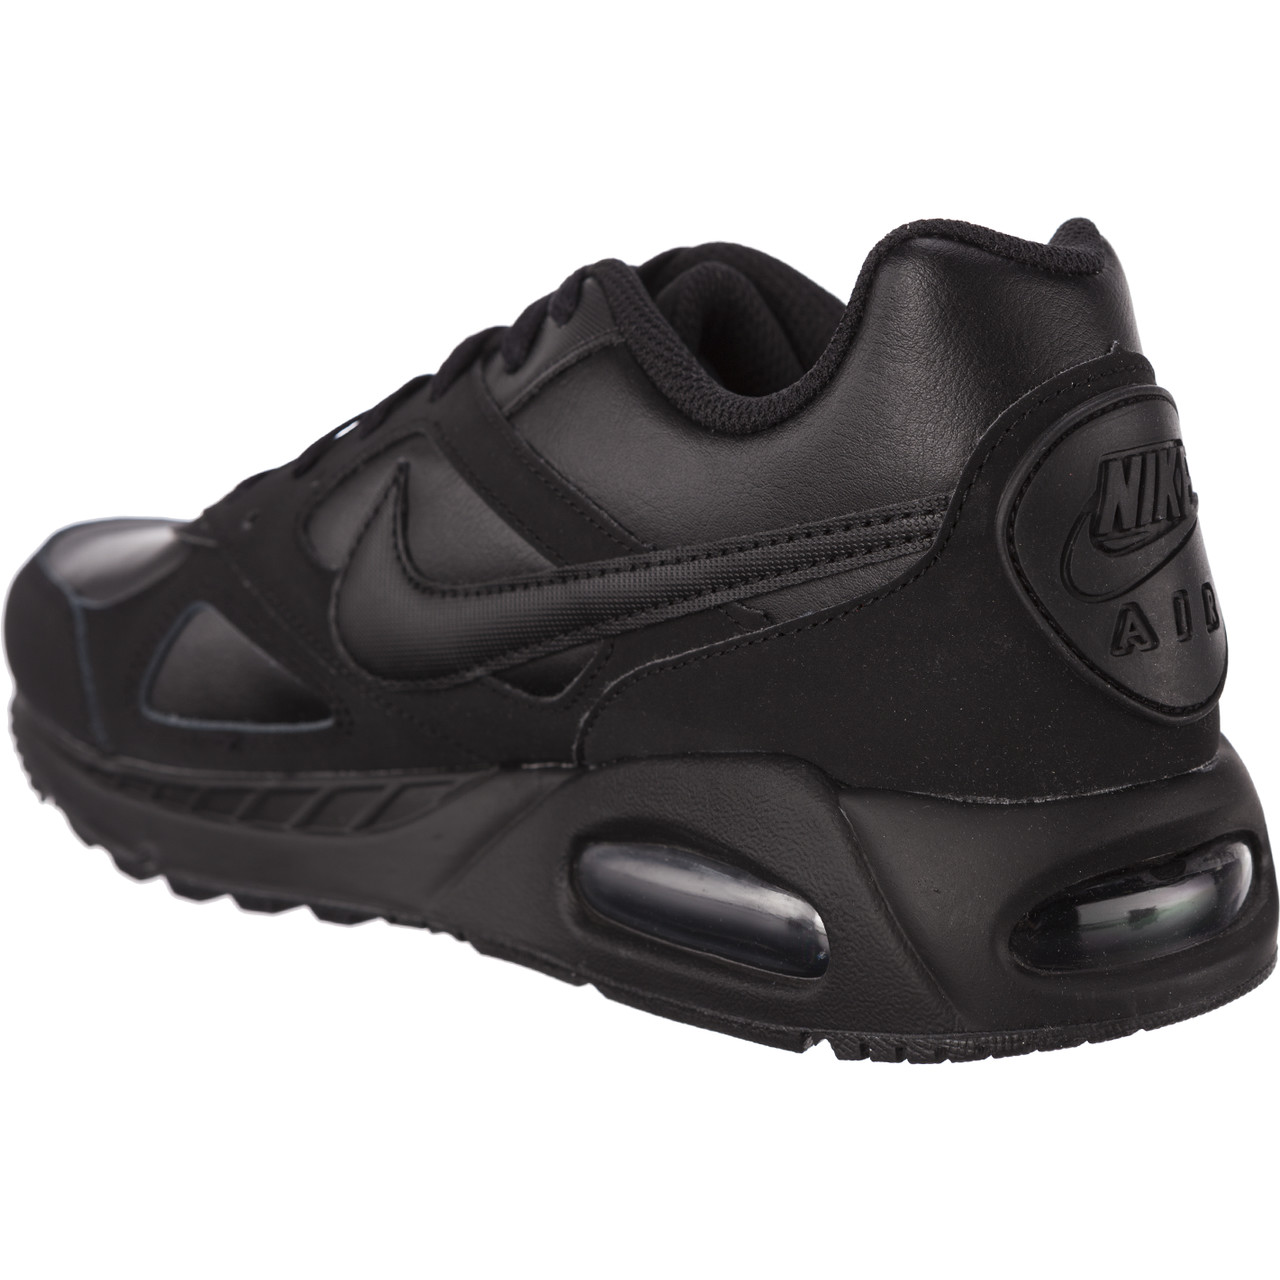 ... sale buty nike air max ivo leather 002 black 580520 002 a79b4 3c2b7 d10181c99